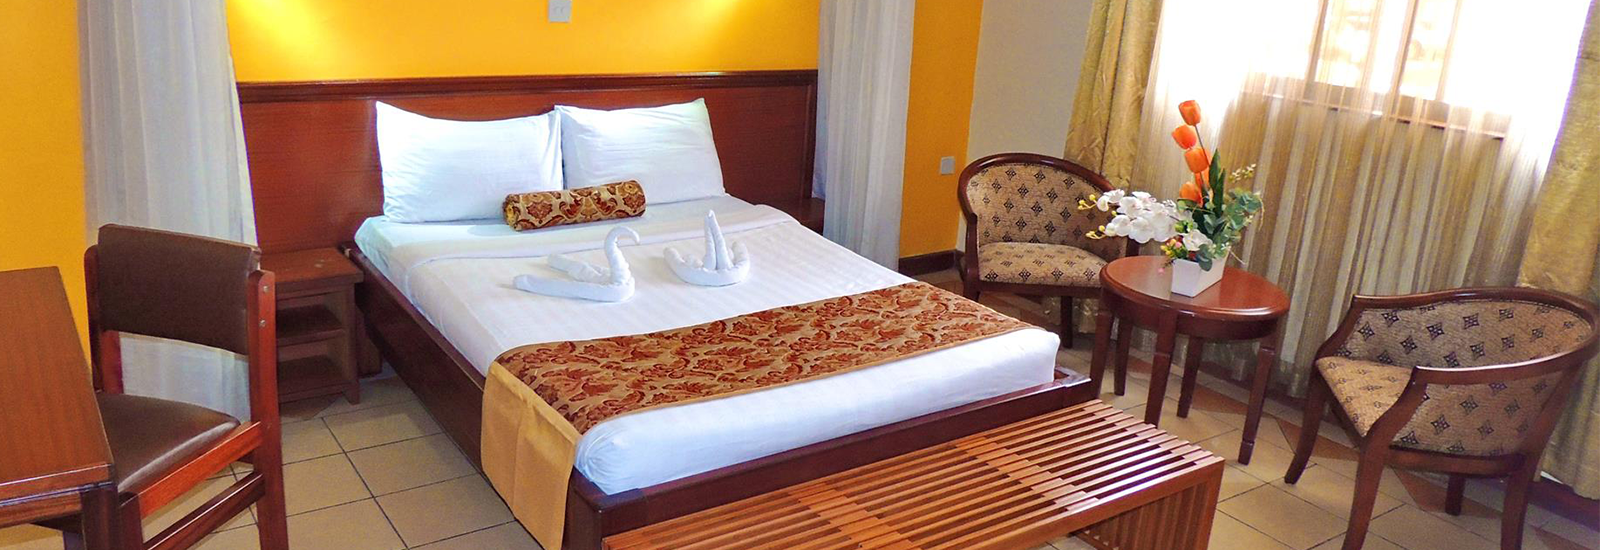 Book-Hotel-Room-in-Nairobi